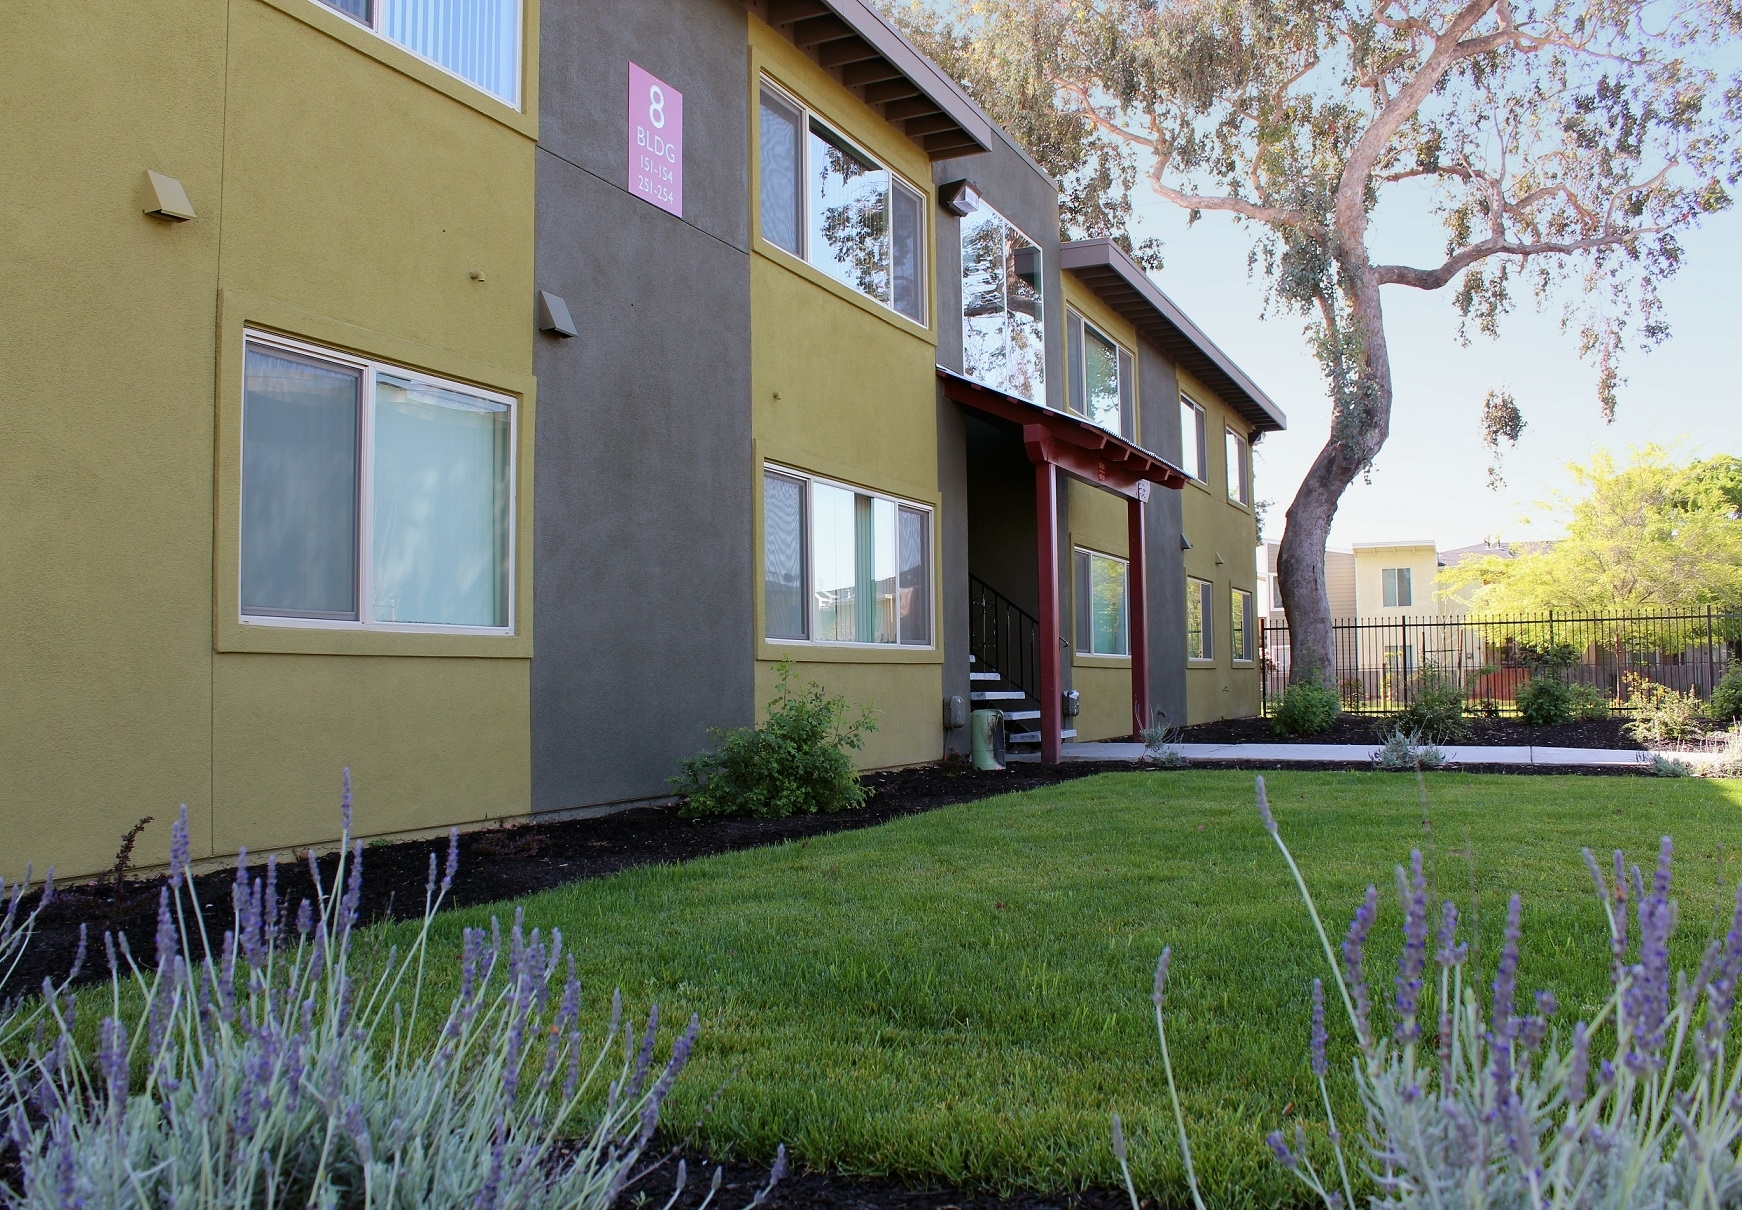 New Sec. 811 Funding Used At California Development| Housing inside Garden Village Apartments